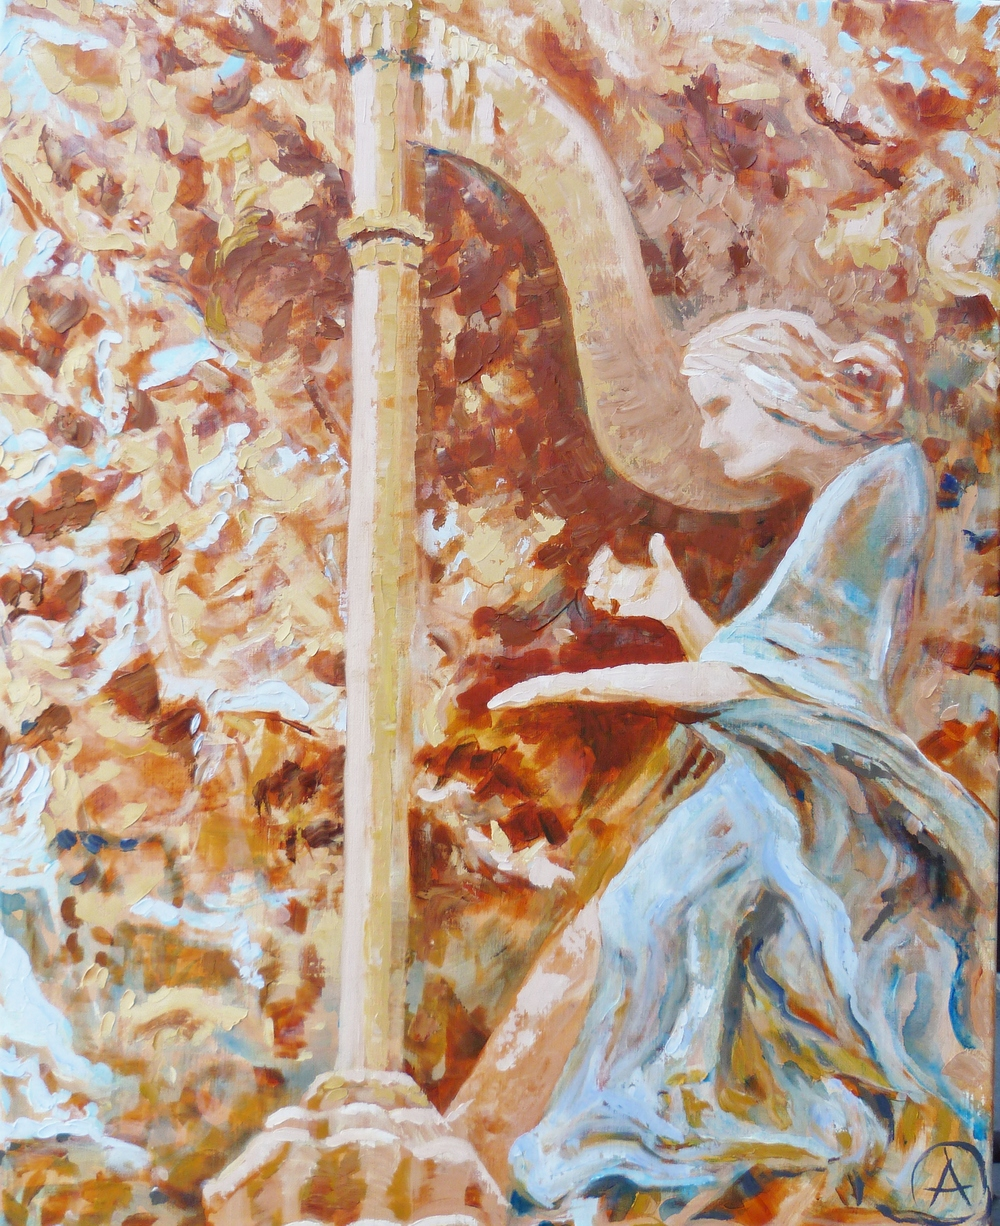 "SOLD, The Harpist, Copyright 2013 Hirschten, Oil on Canvas, 16"" x 20""  ,"